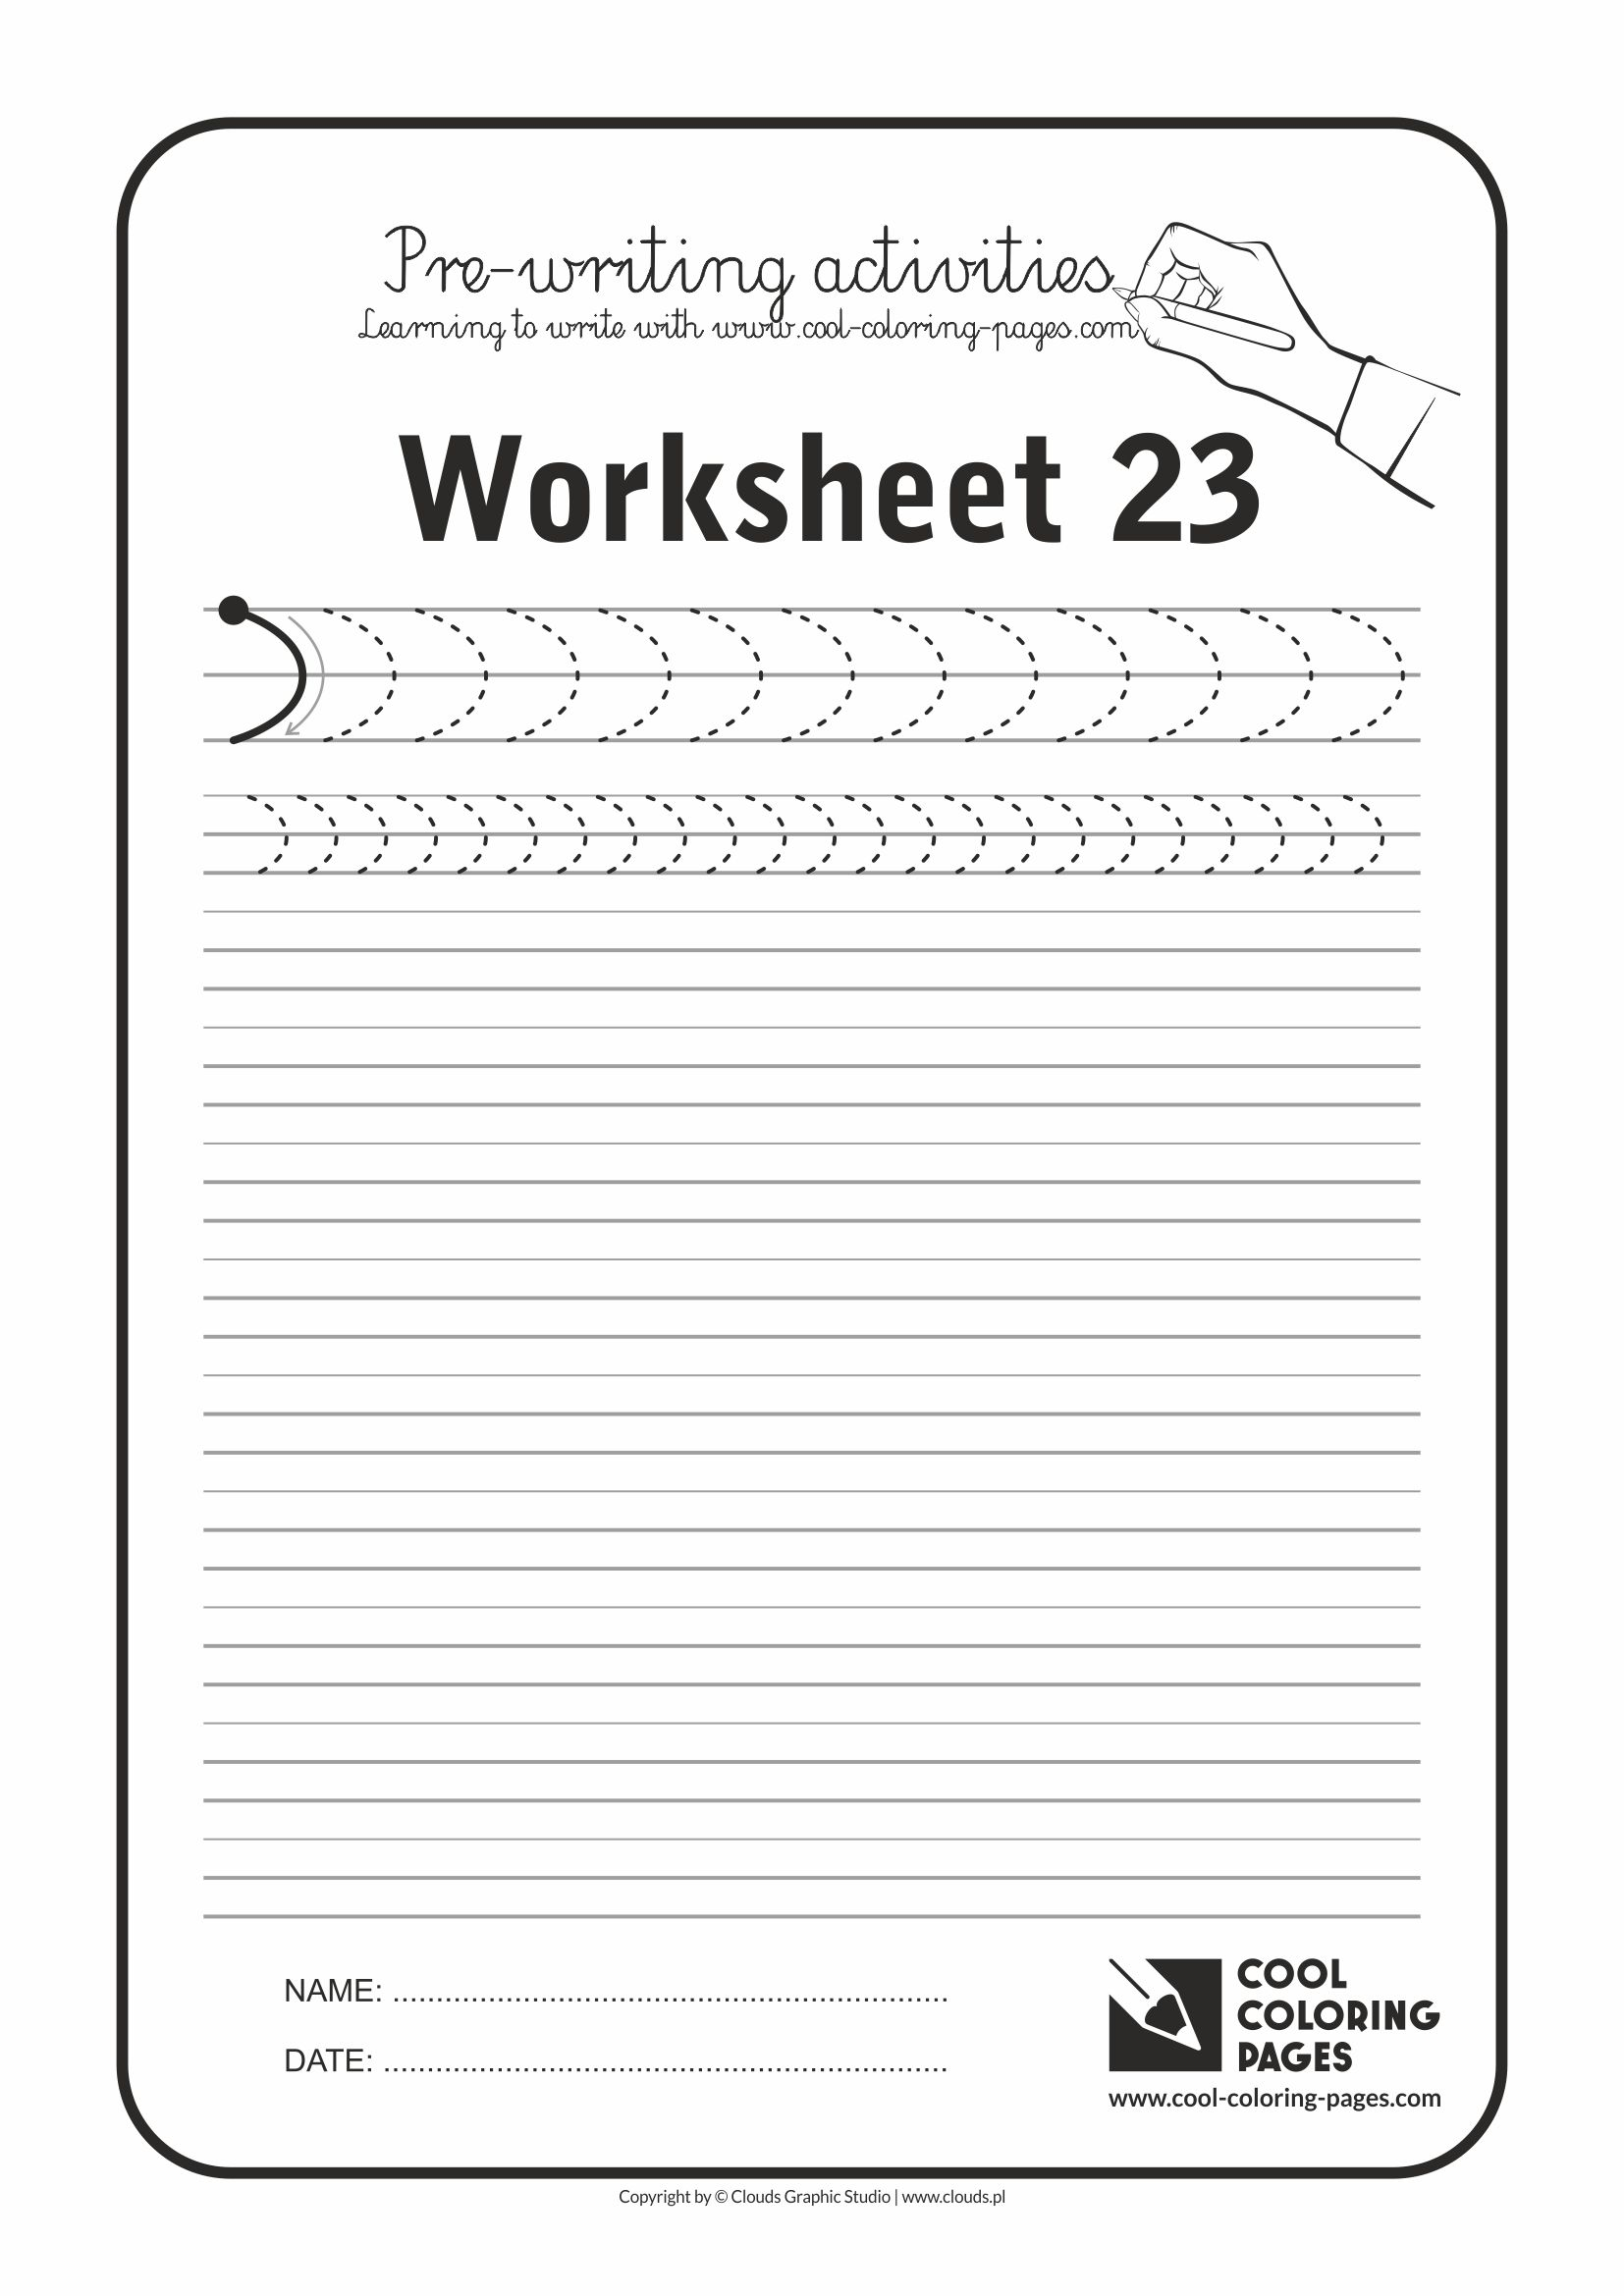 Cool Coloring Pages / Pre-writing activities / Worksheet no.23